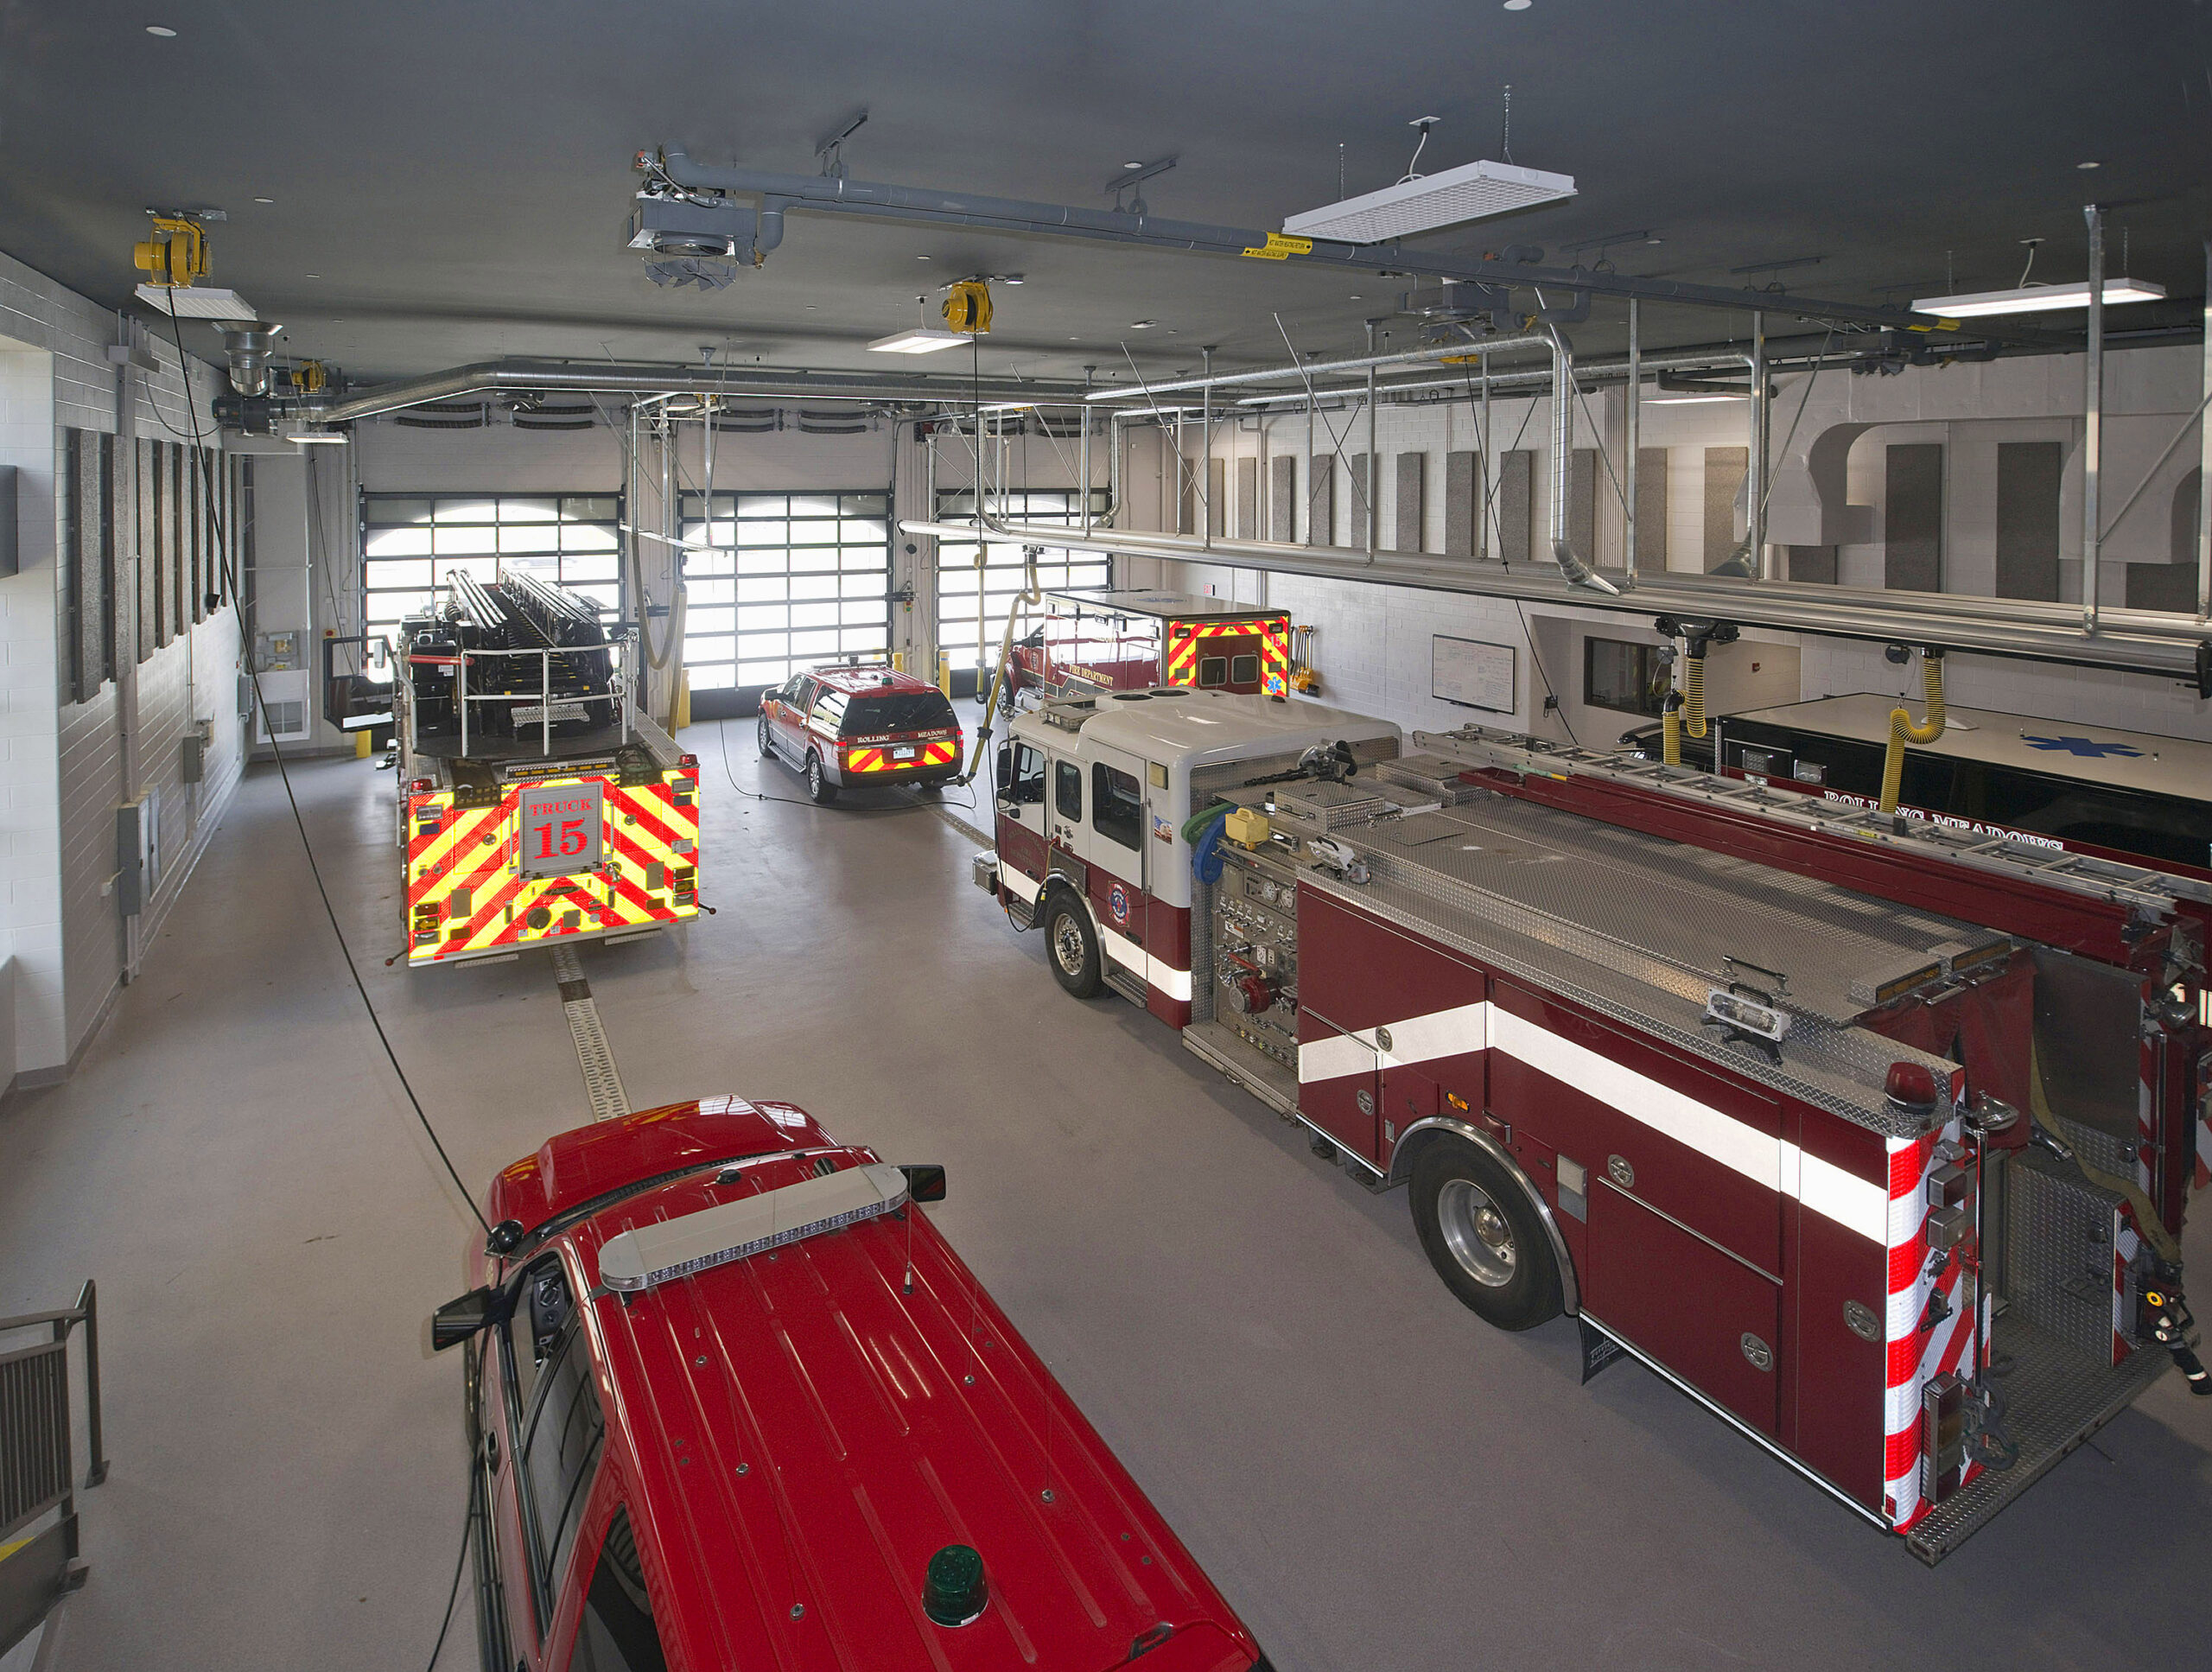 Rolling Meadows Fire Station 15